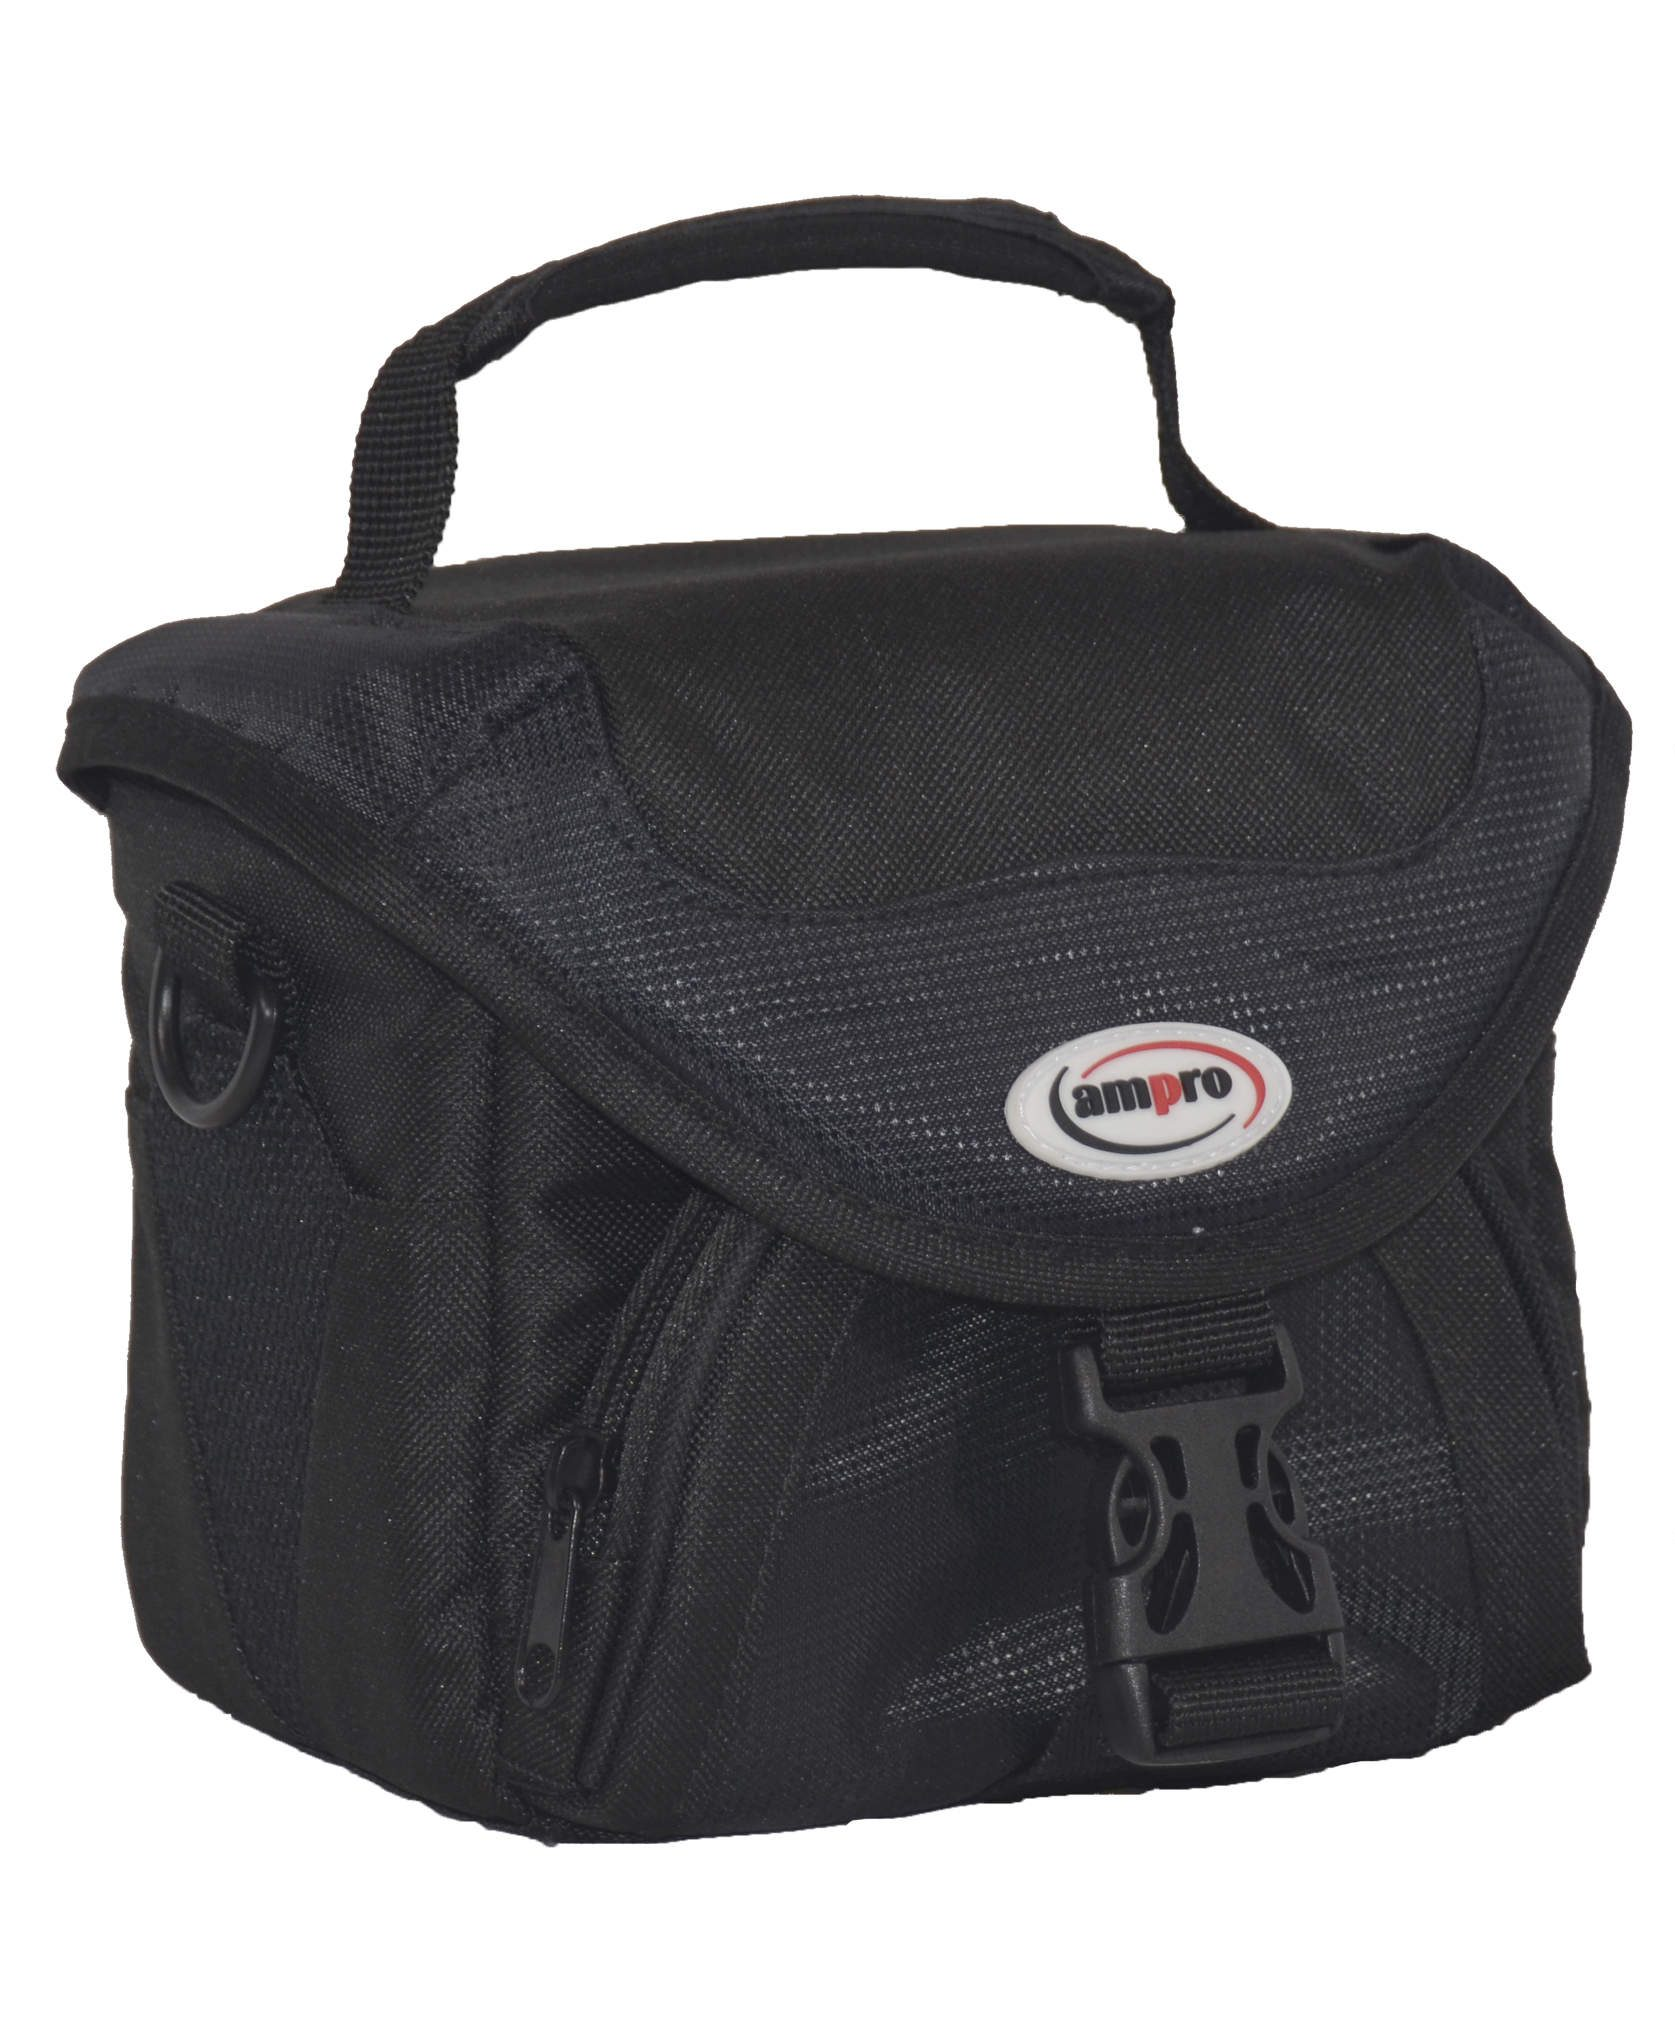 Ampro Oasis-2518 Black Gadget Bag